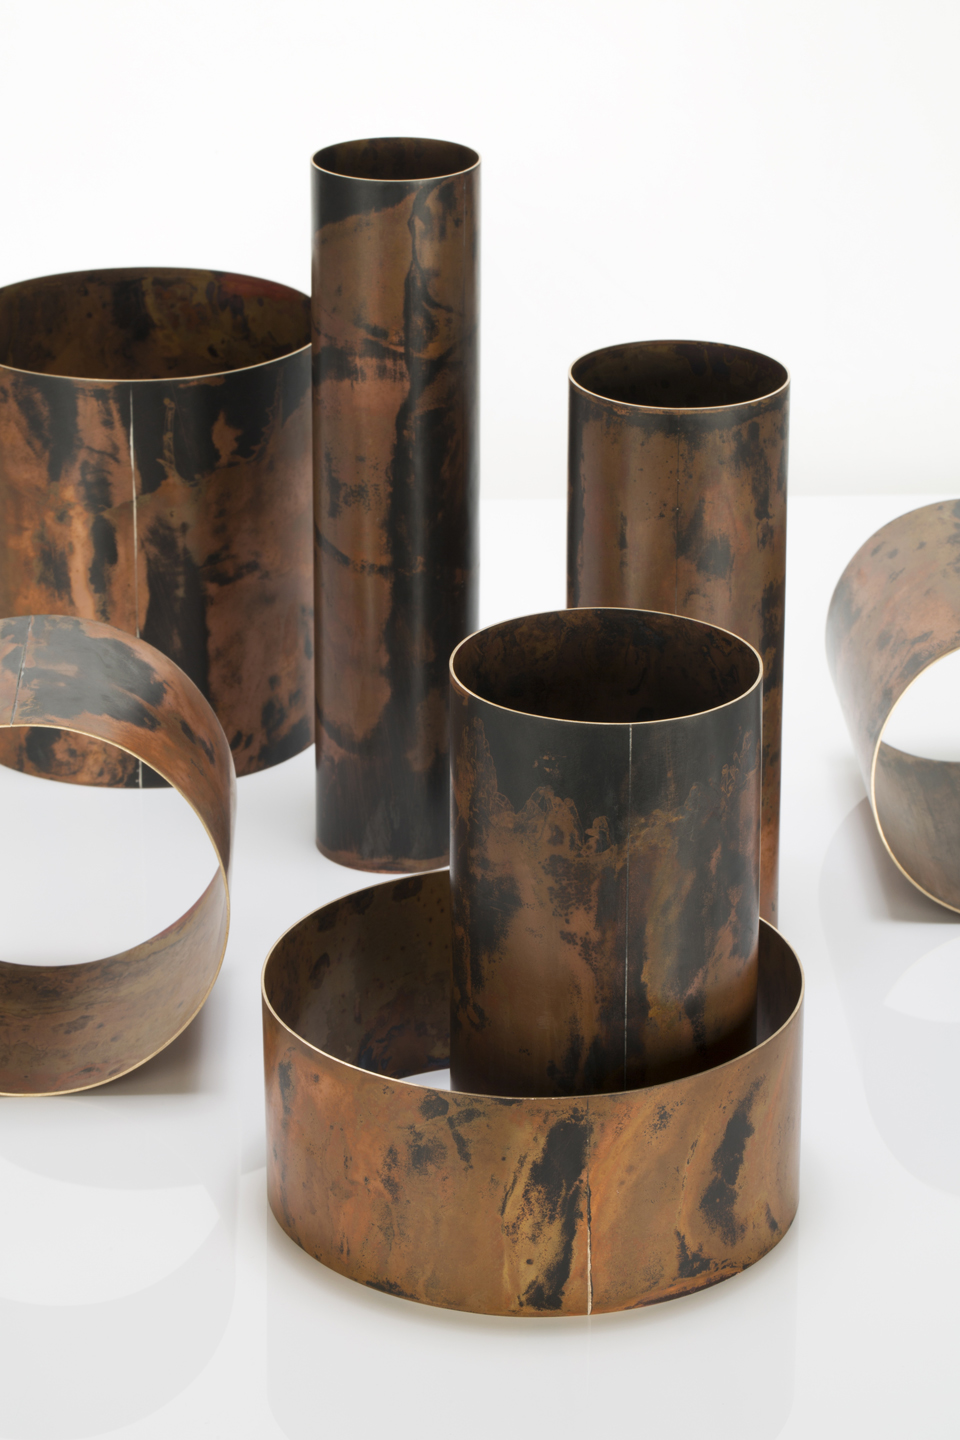 Juliette_Bigley_Cylinders_patinated_gilding_metal_2018_5.JPG